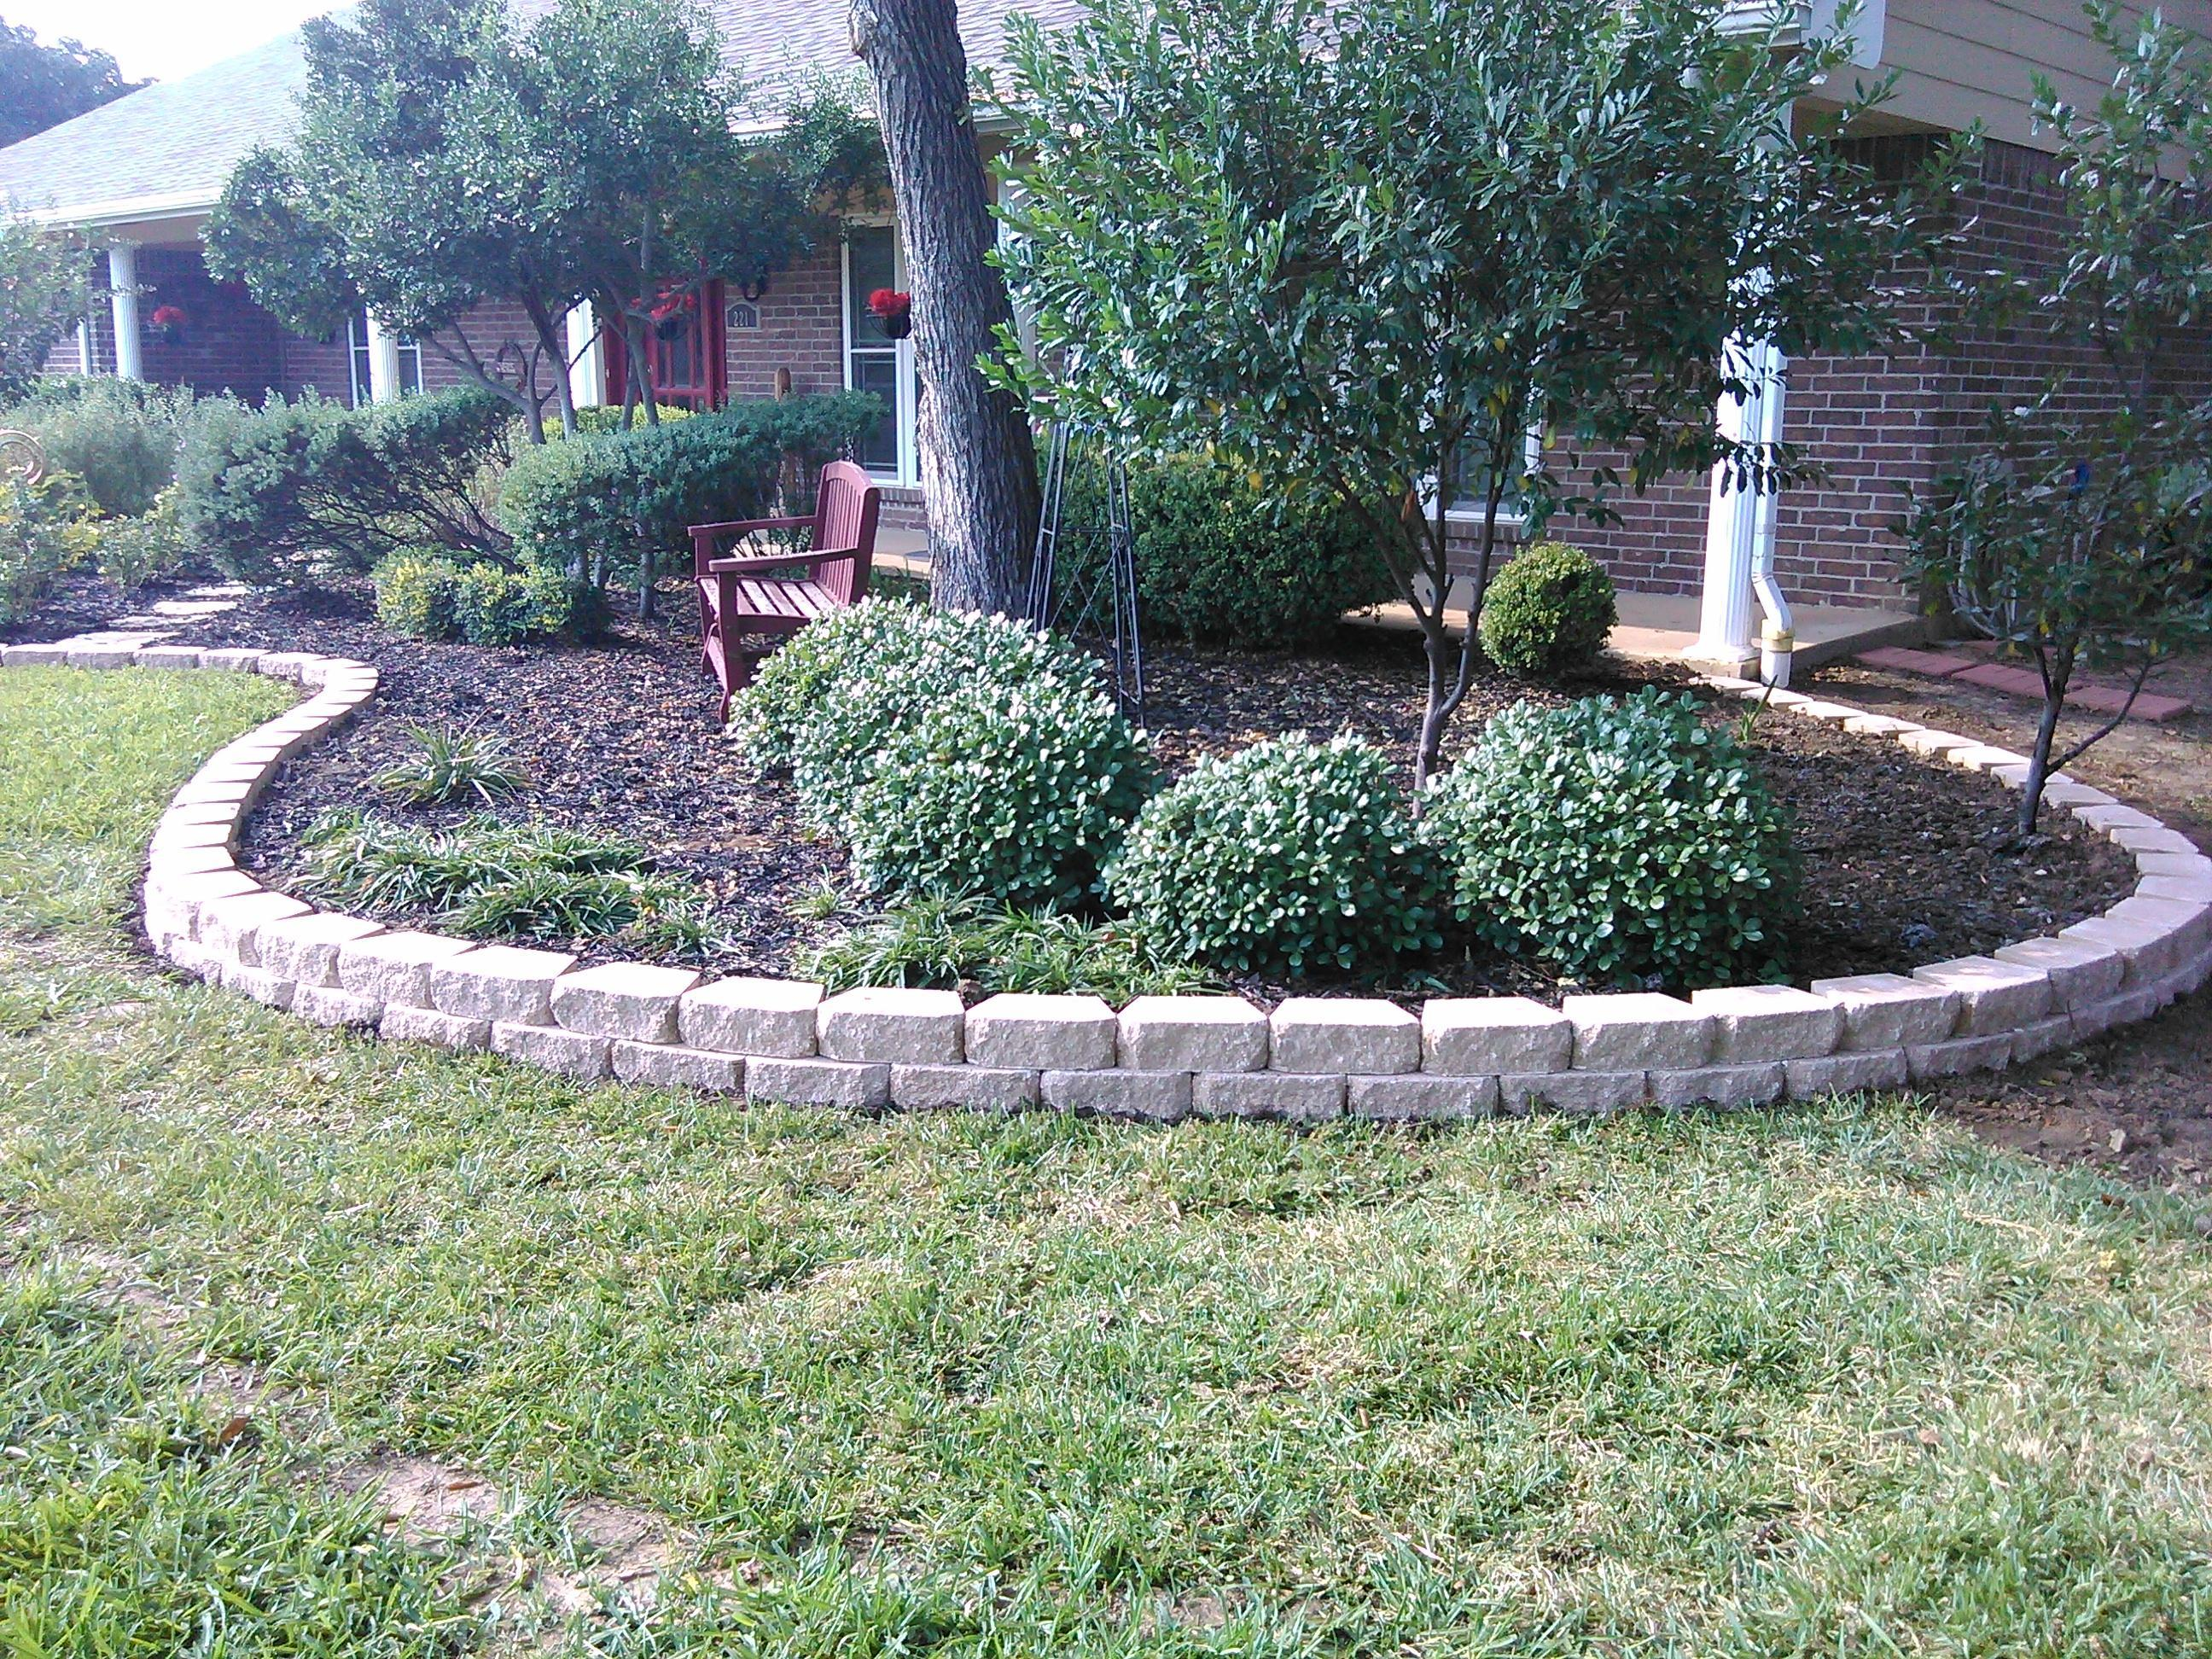 Be Green Texas Lawn Care & Landscaping - ad image